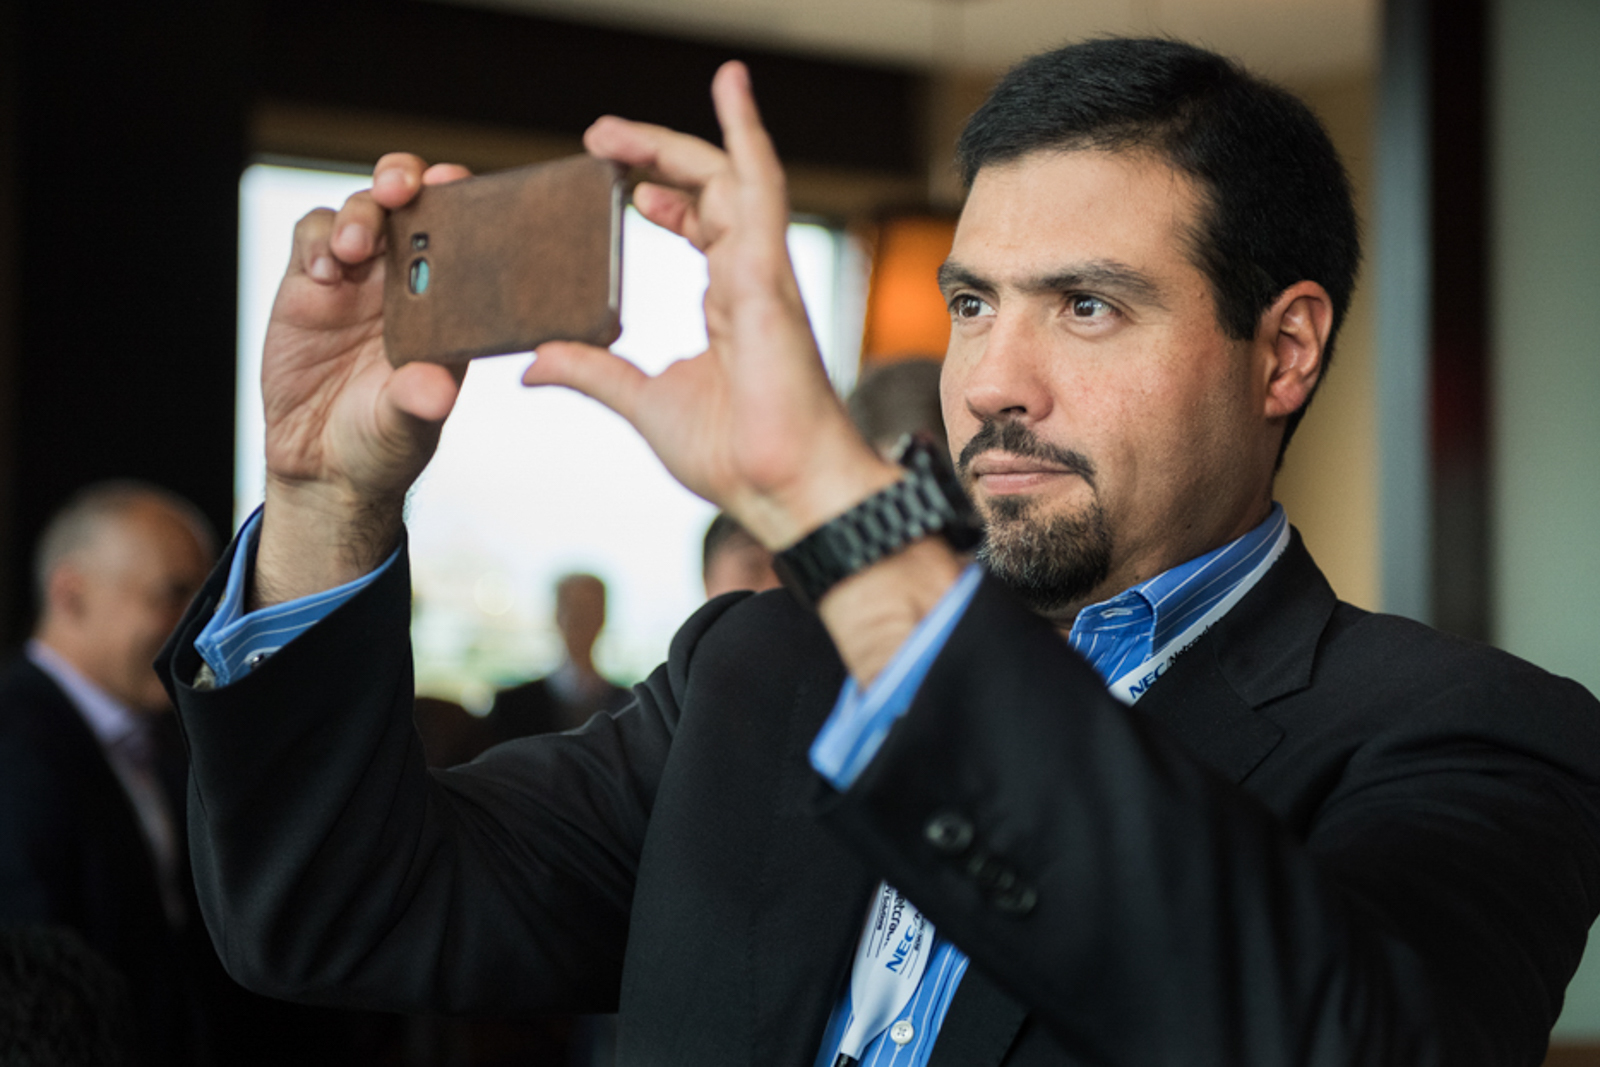 Candid image of man in a business gathering, taking a cellphone photo